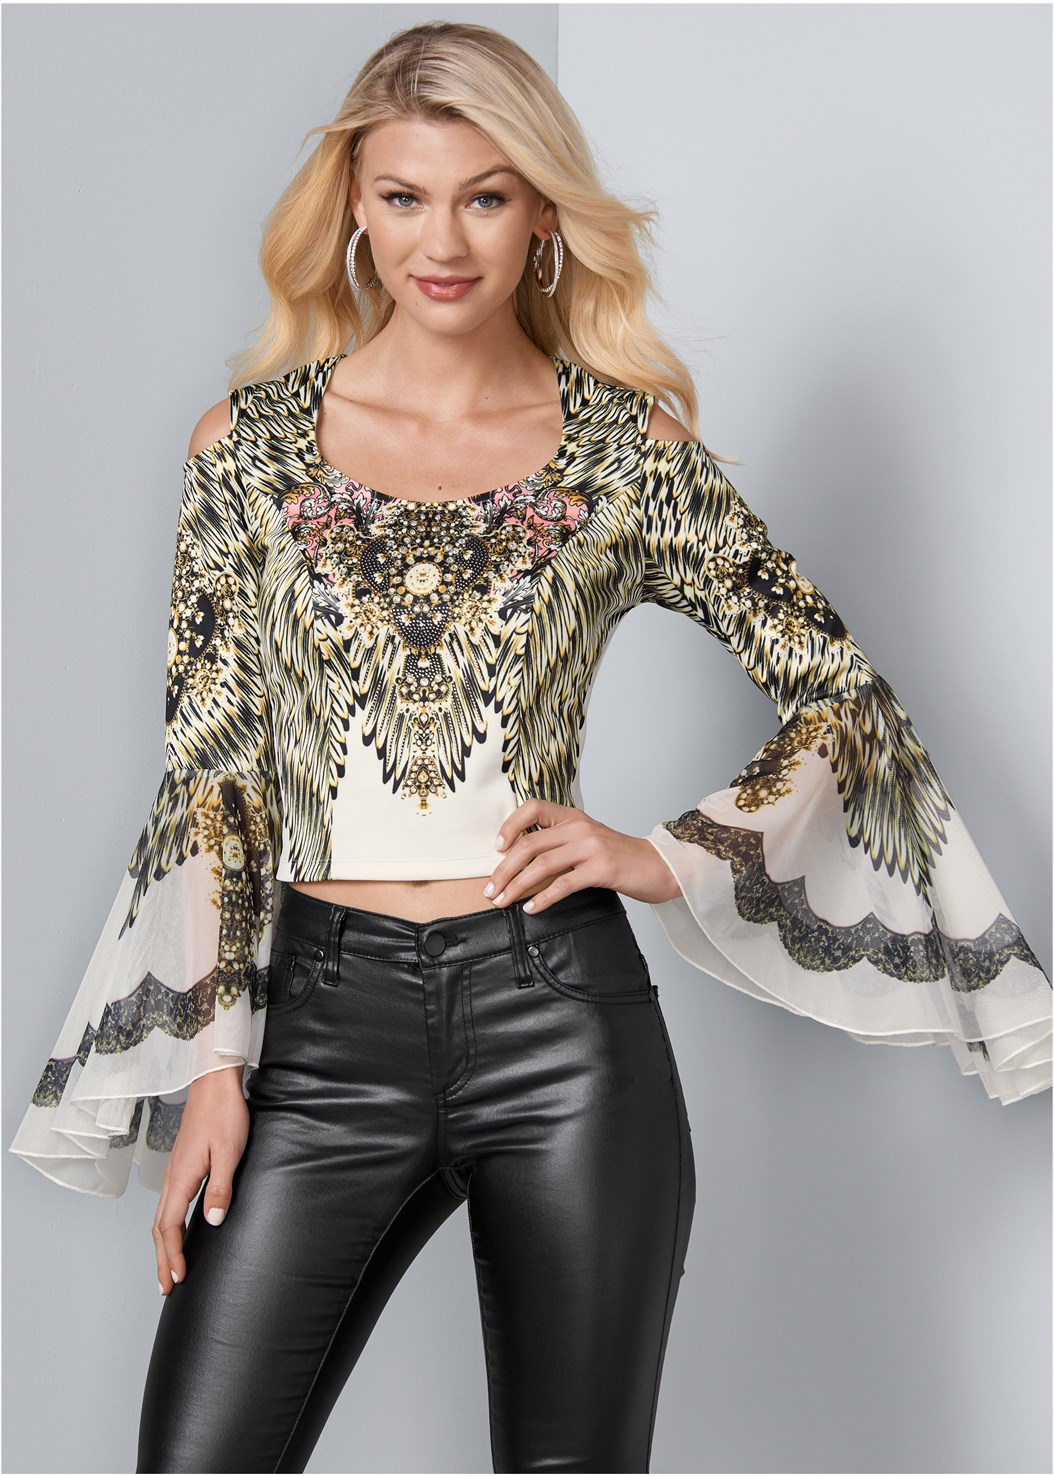 Embellished Bell Sleeve Top,Faux Leather Pants,Pullover Lace Bra